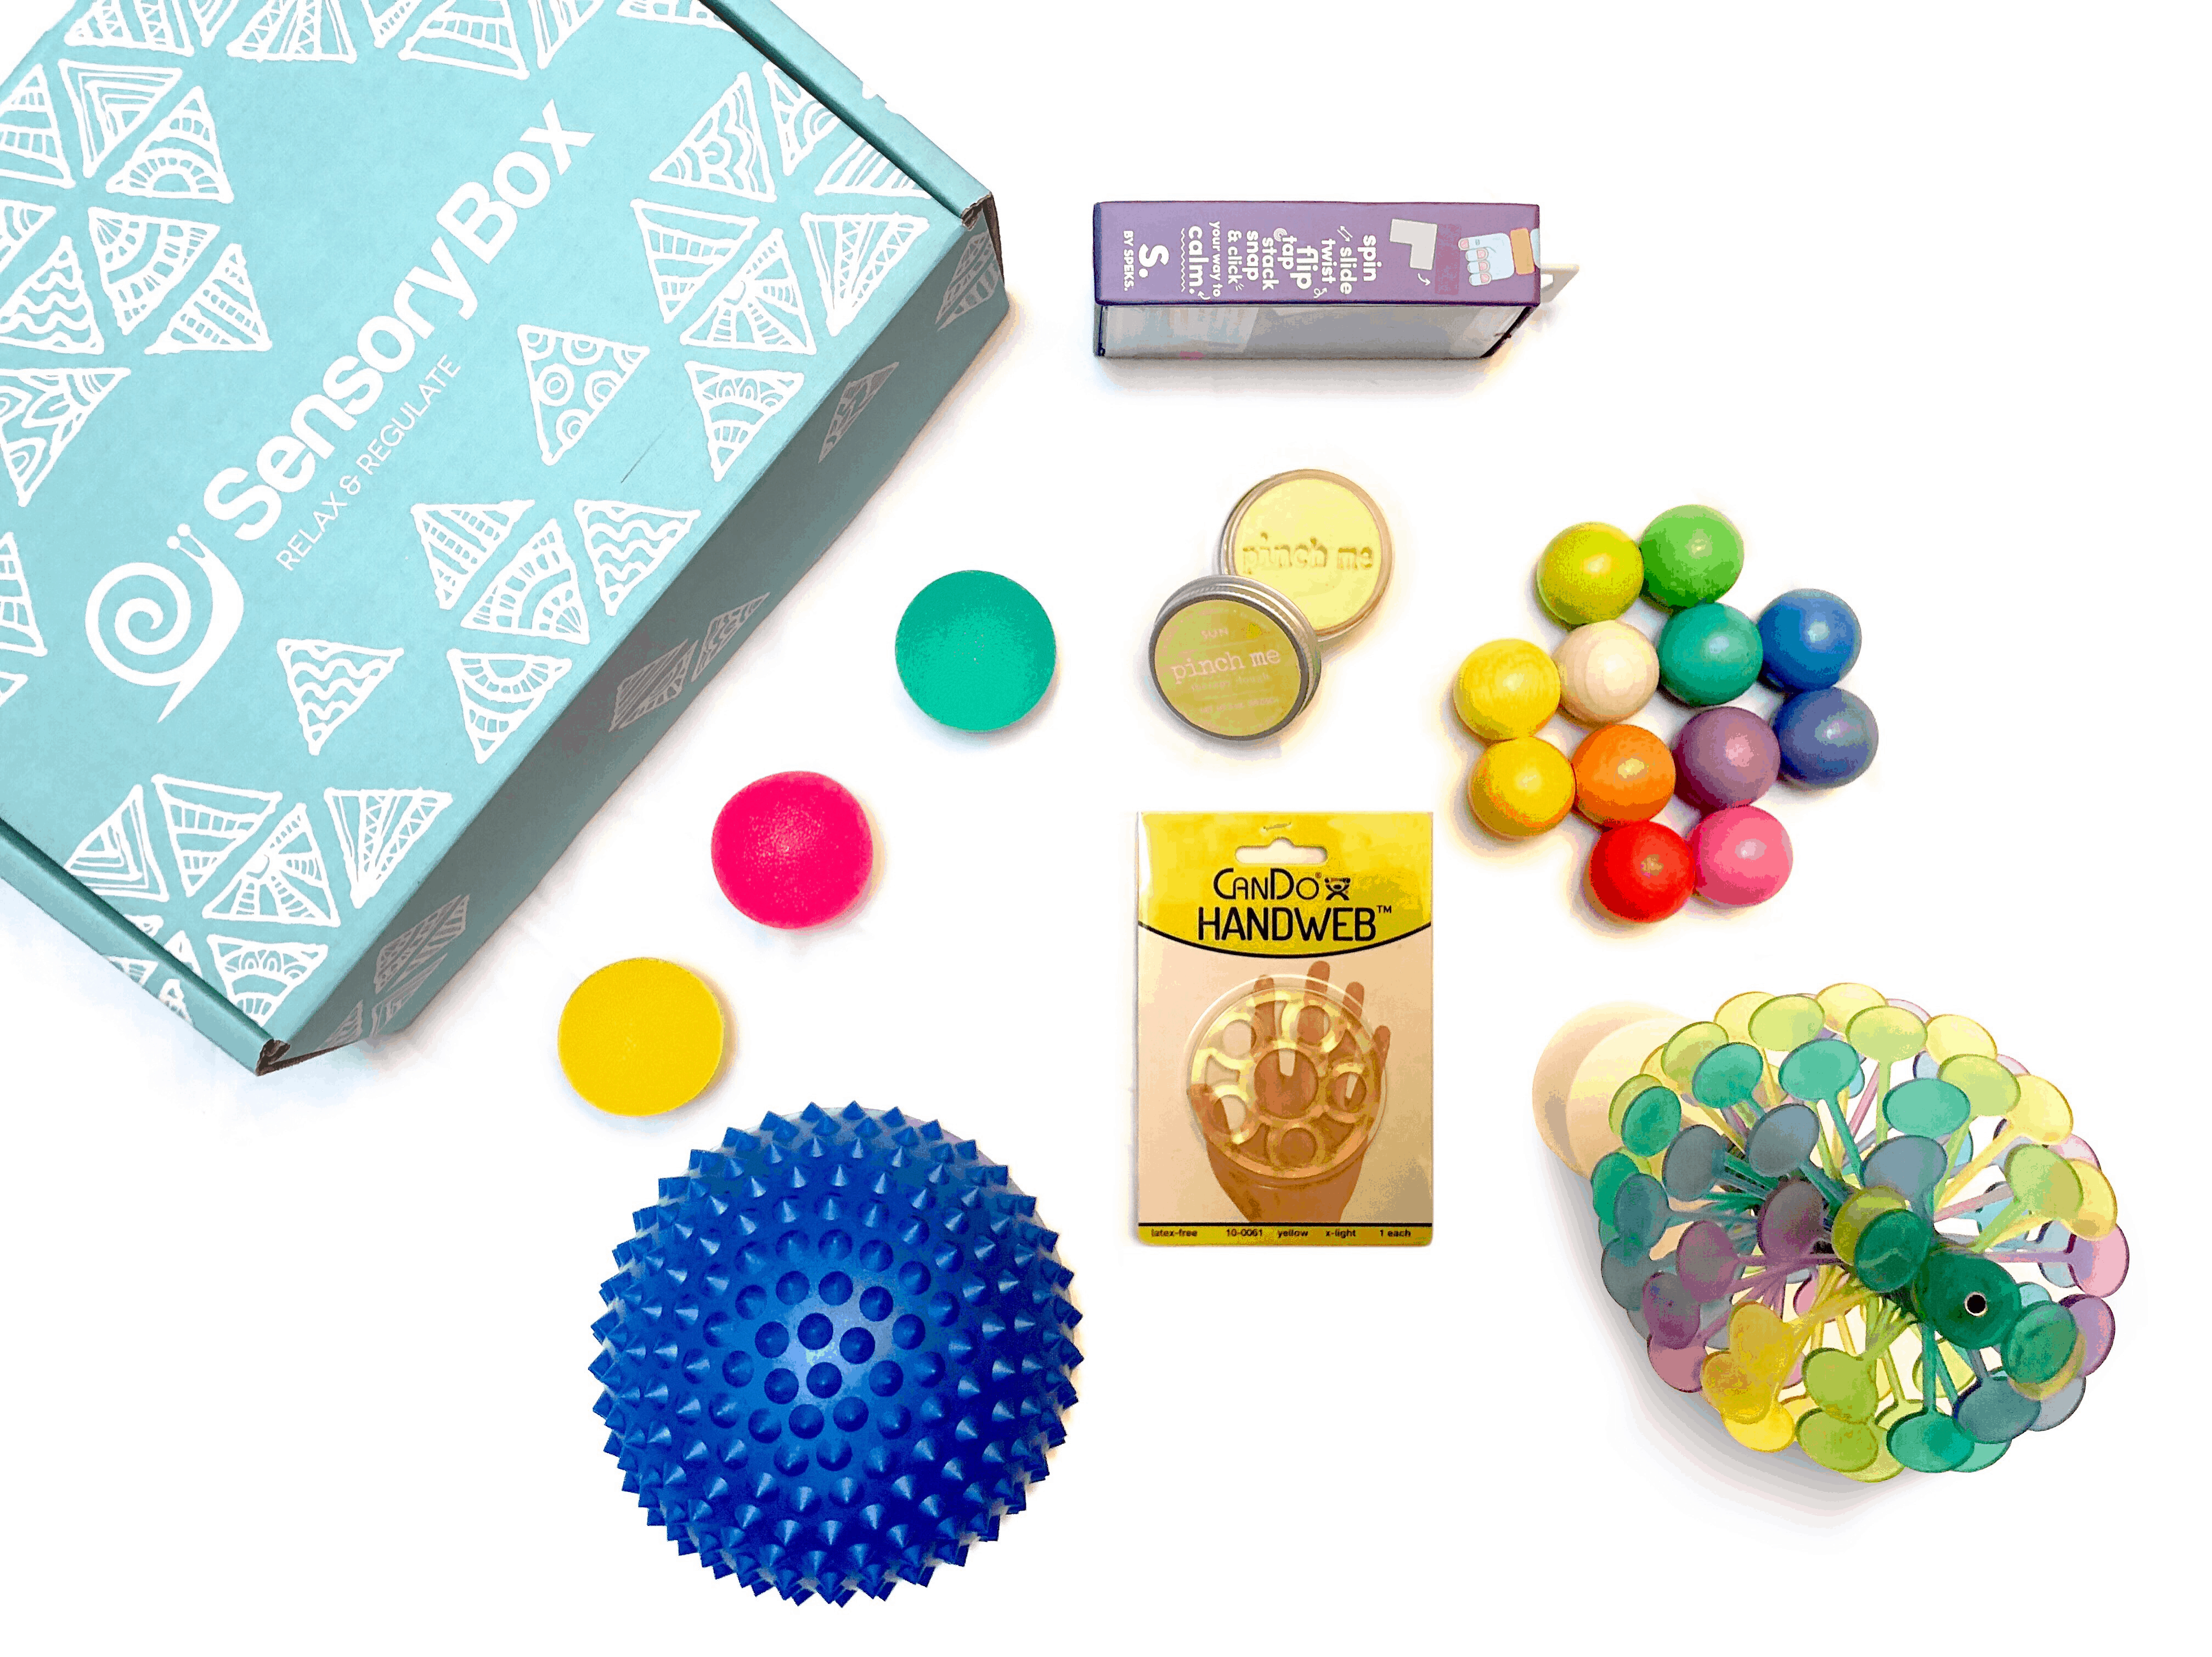 Sensory Box Black Friday Deal: Save $15 off your first Sensory Box geared for teens and adults!